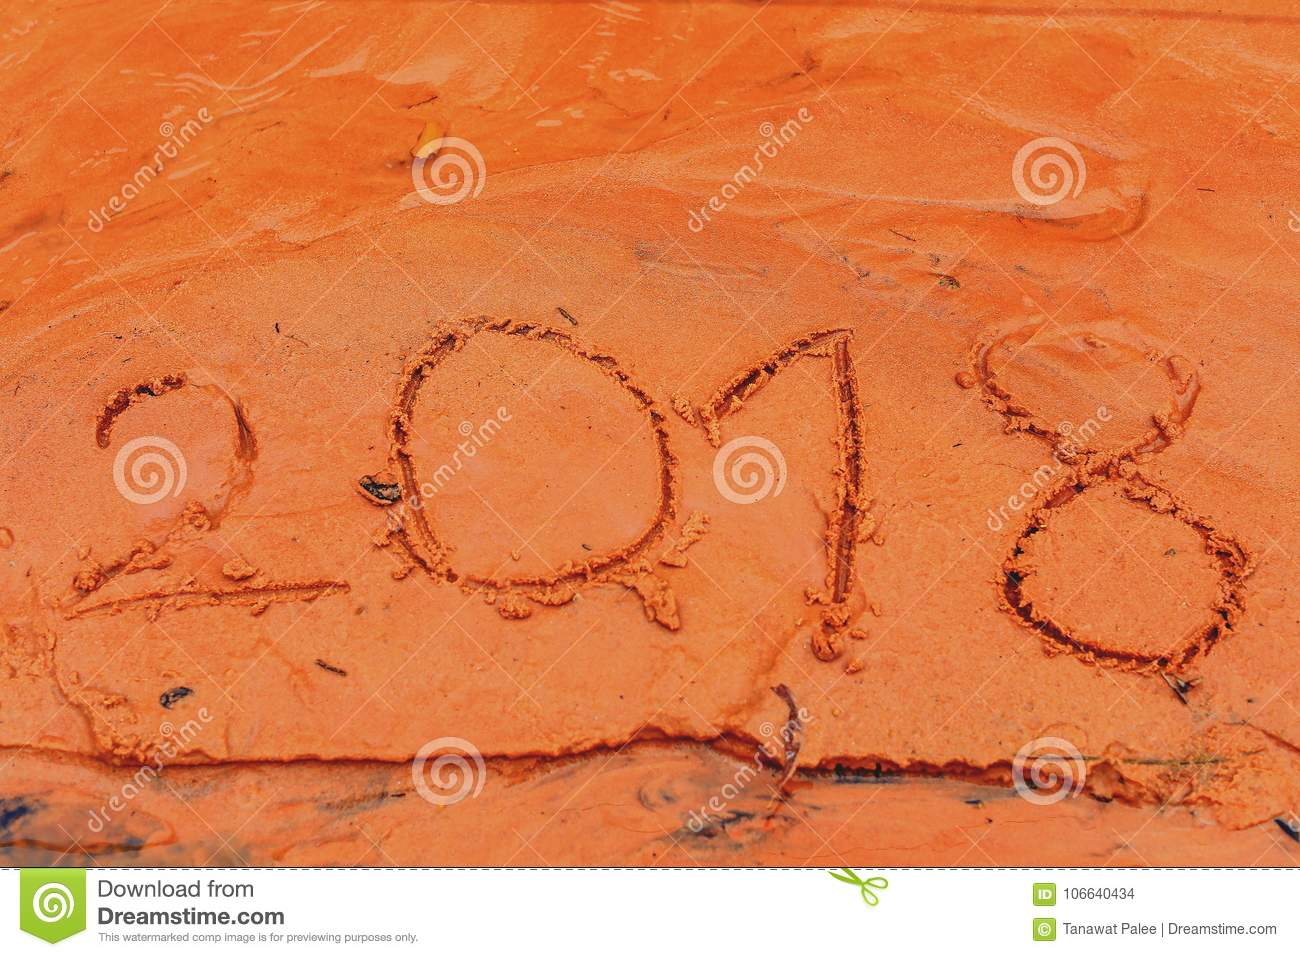 2018 New Year stock photo. Image of sandn 58a99f0065a